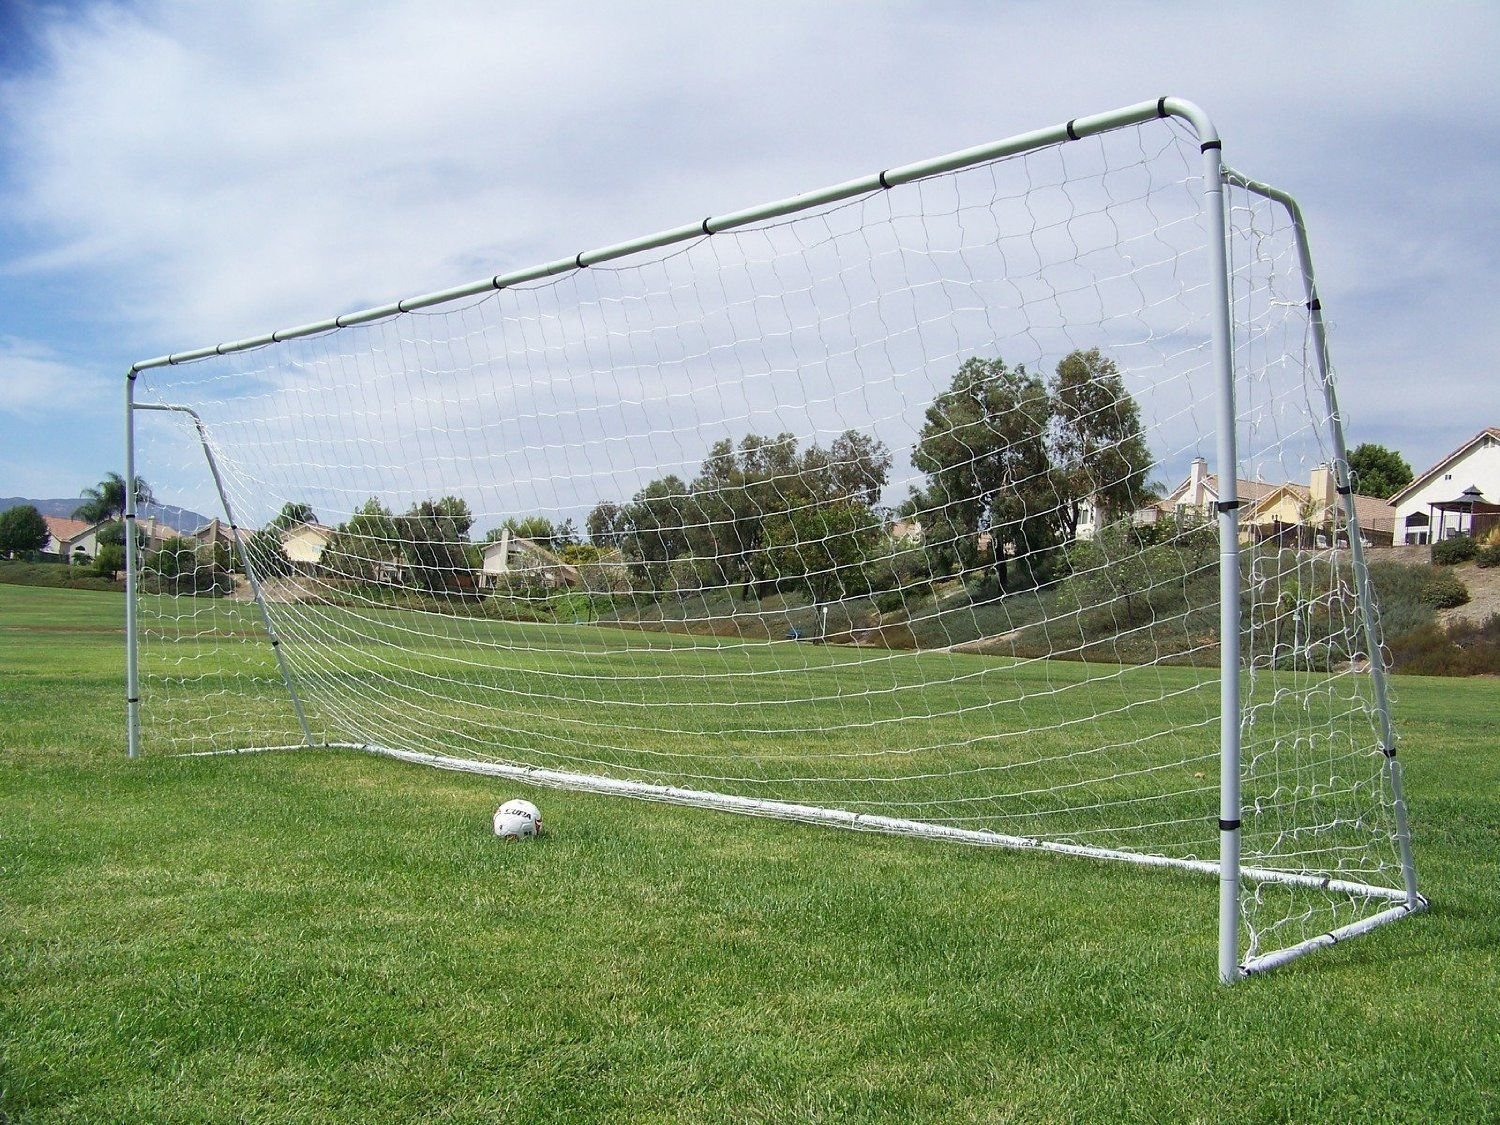 PASS 24 x 8 Ft. Official Size. Heavy Duty Steel Soccer Goal w/Net. Regulation MLS/FIFA Size Goals. Professional Practice Training Aid. 24x8 Foot. (1Net)